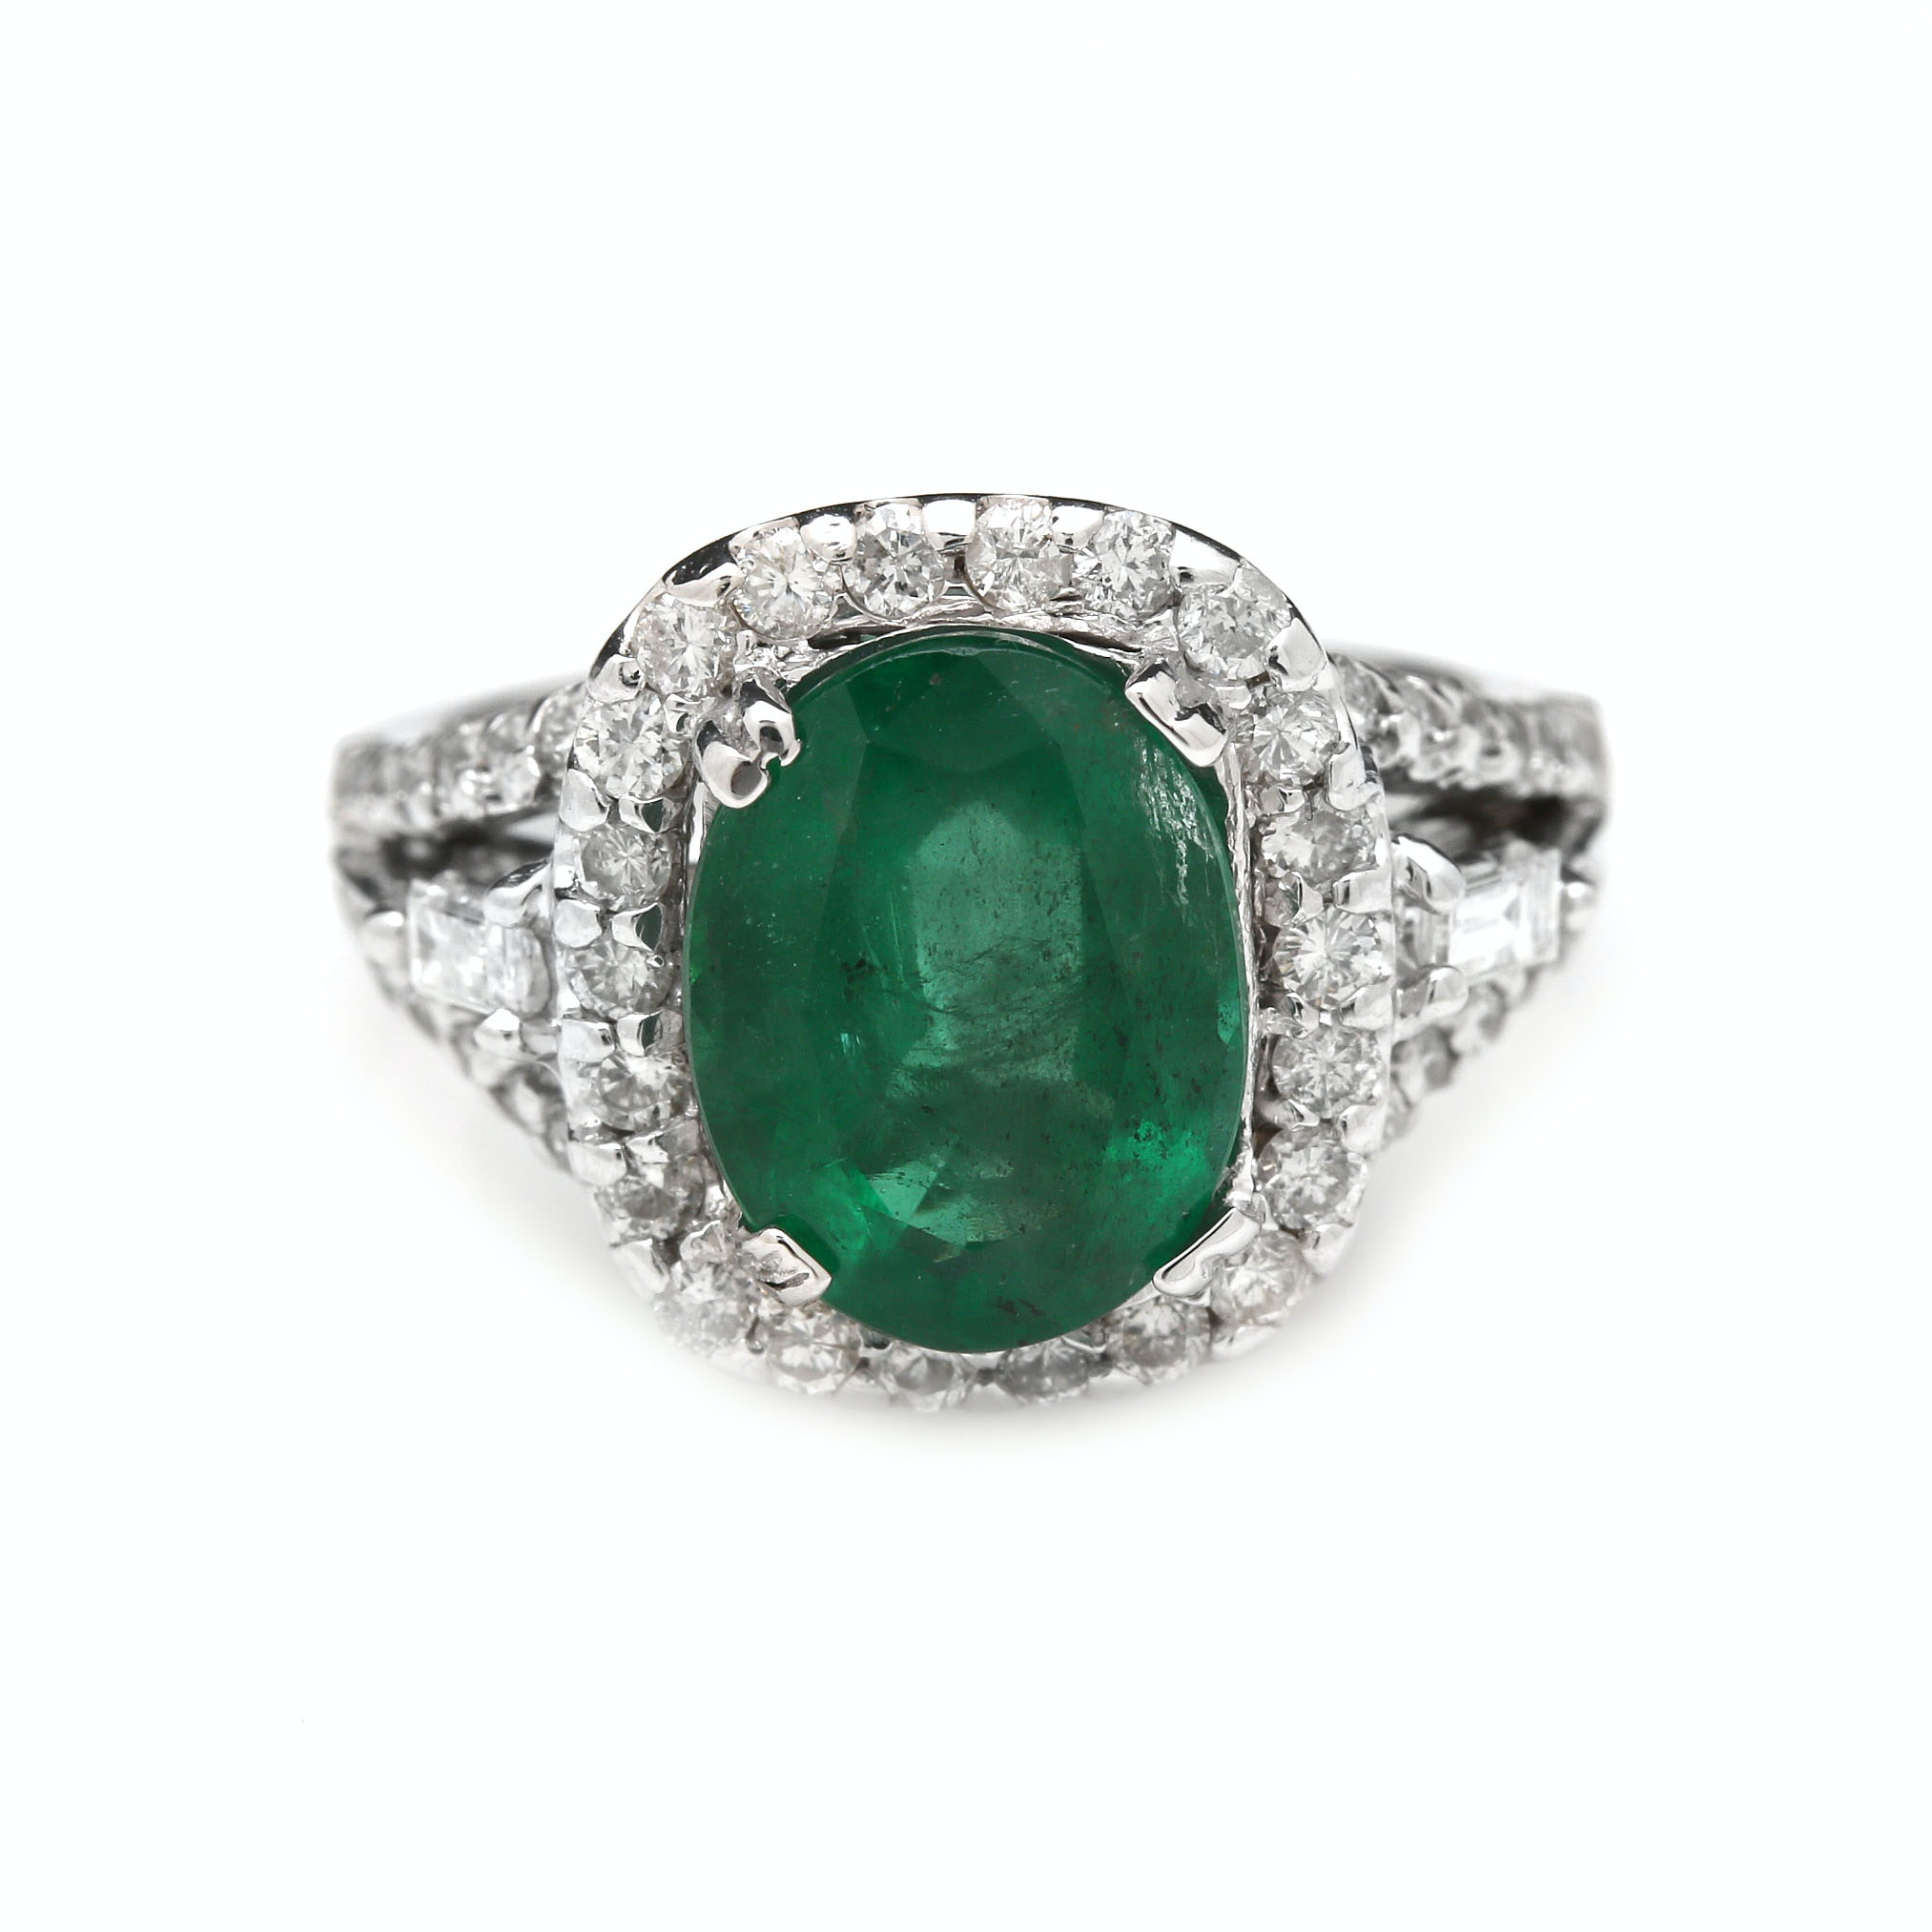 14K White Gold 3.06 CT Emerald and 1.34 CTW Diamond Ring